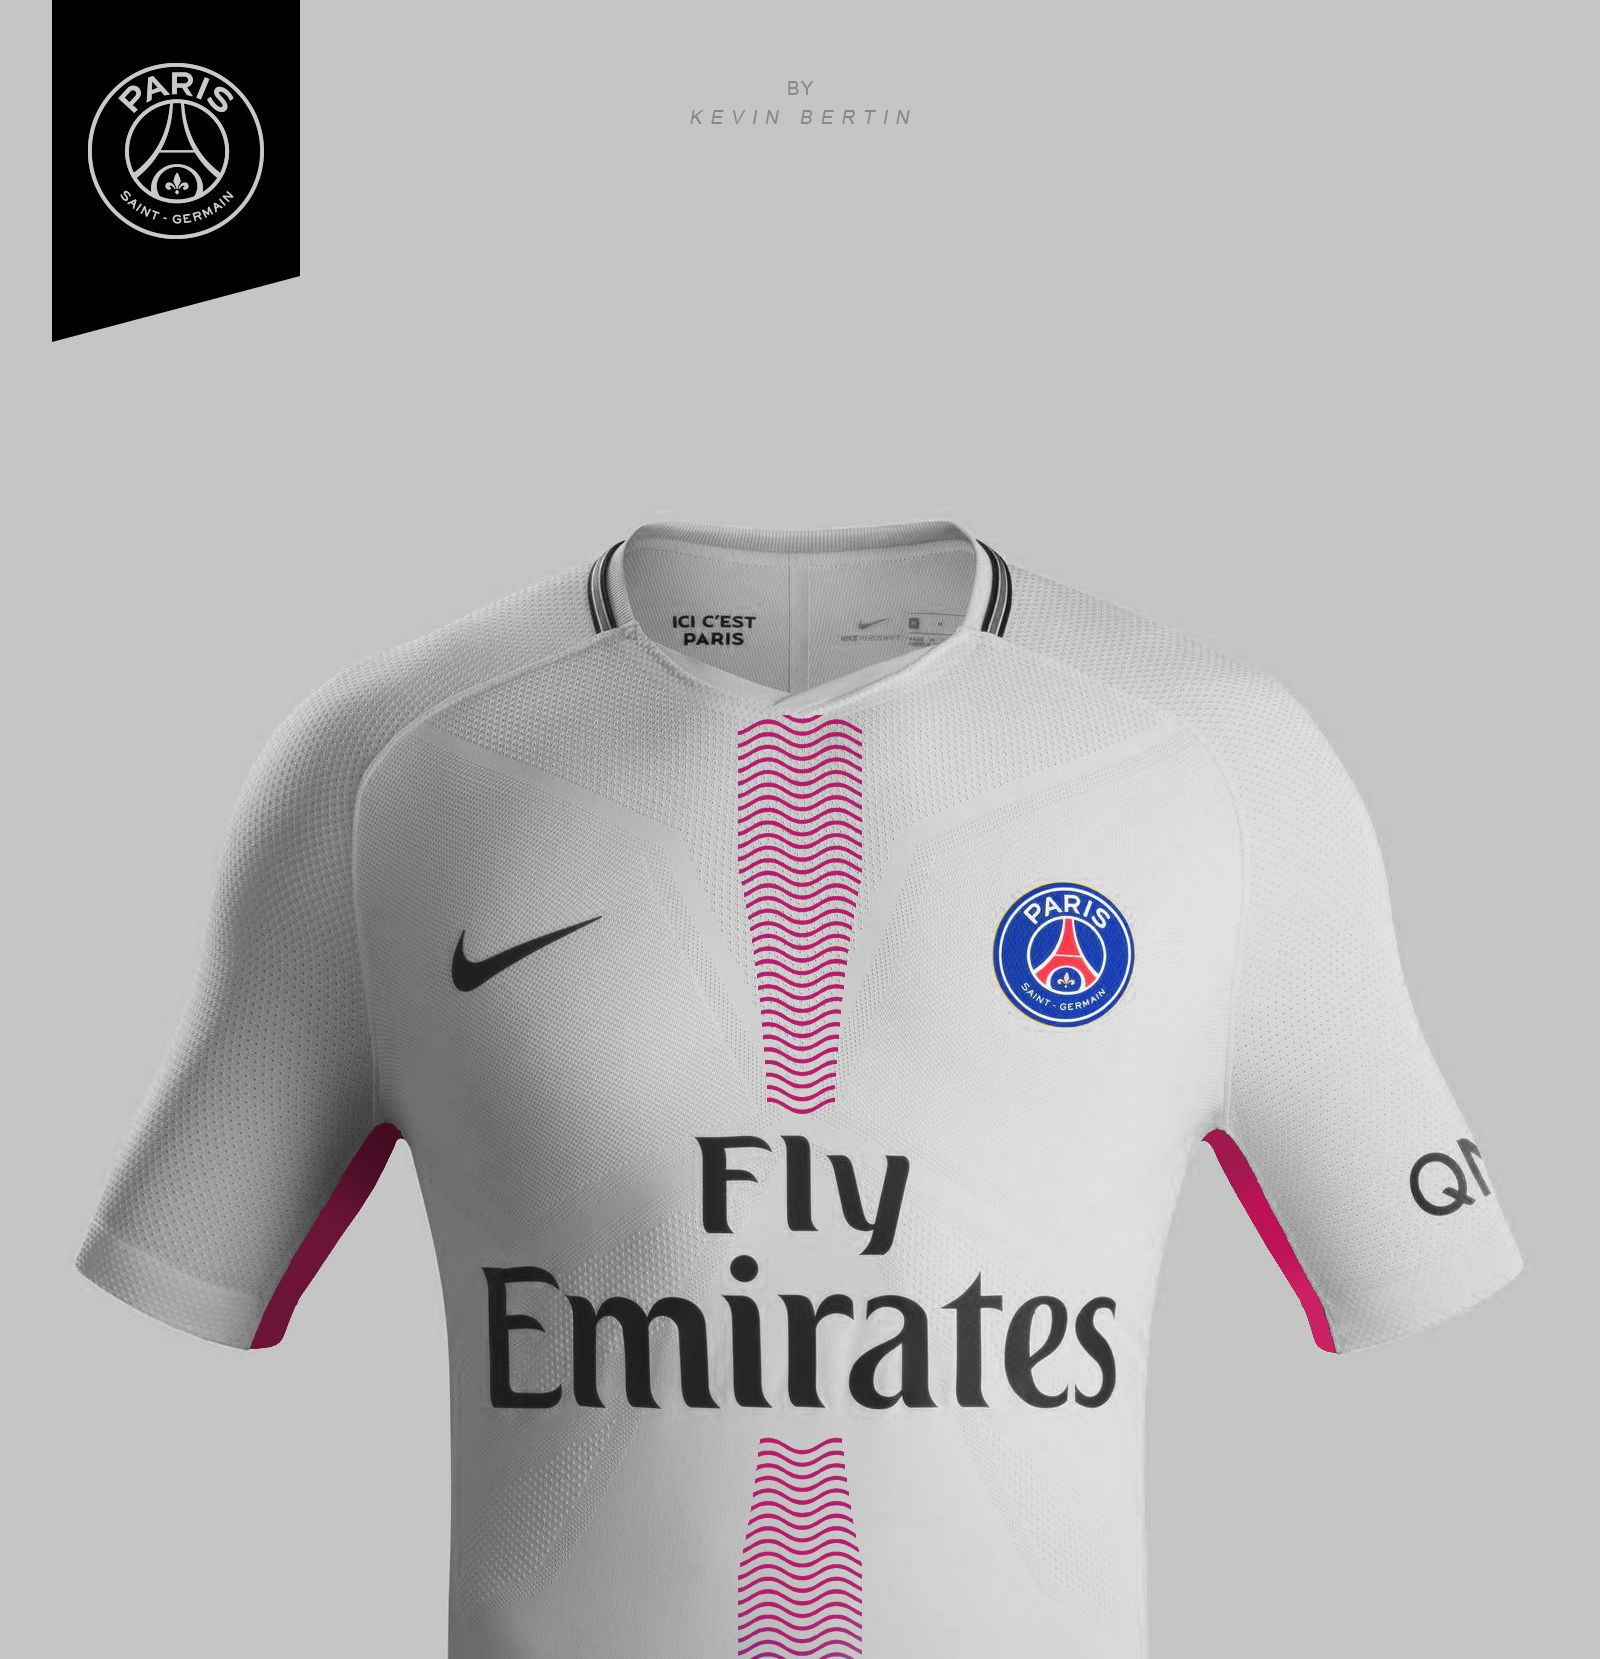 psg concept design jersey maillot 2018 2019 away paris saint germain nike by kevin bertin nike. Black Bedroom Furniture Sets. Home Design Ideas